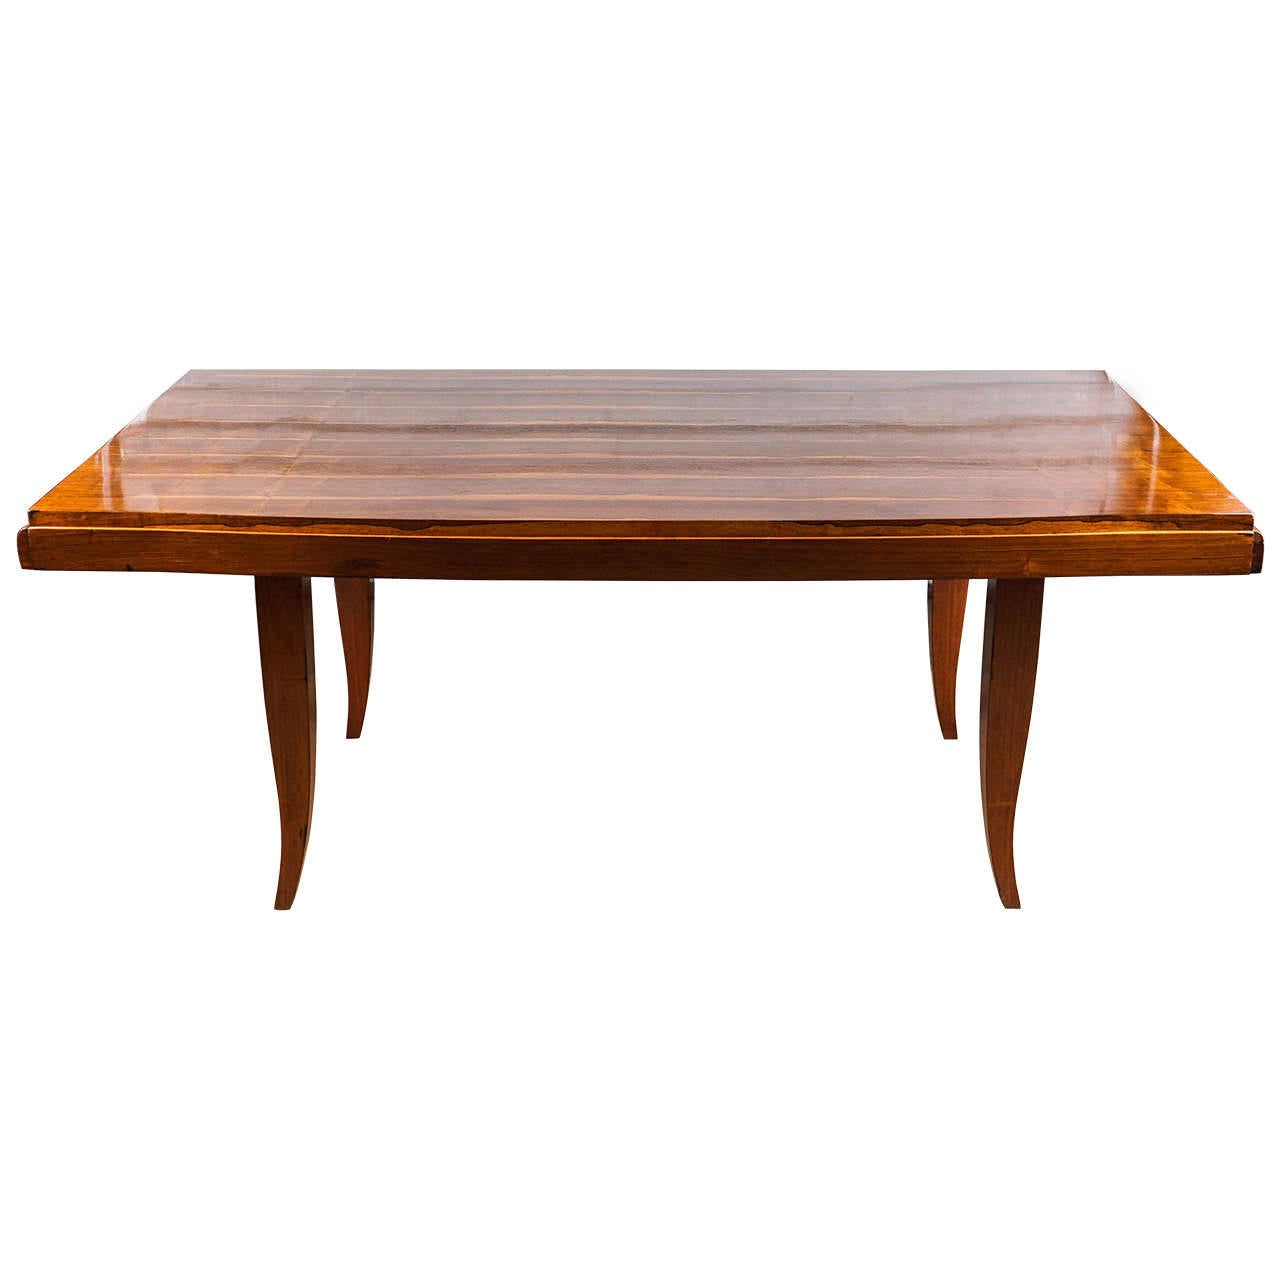 French art deco inlaid rosewood dining room table at 1stdibs for Artistic dining room tables